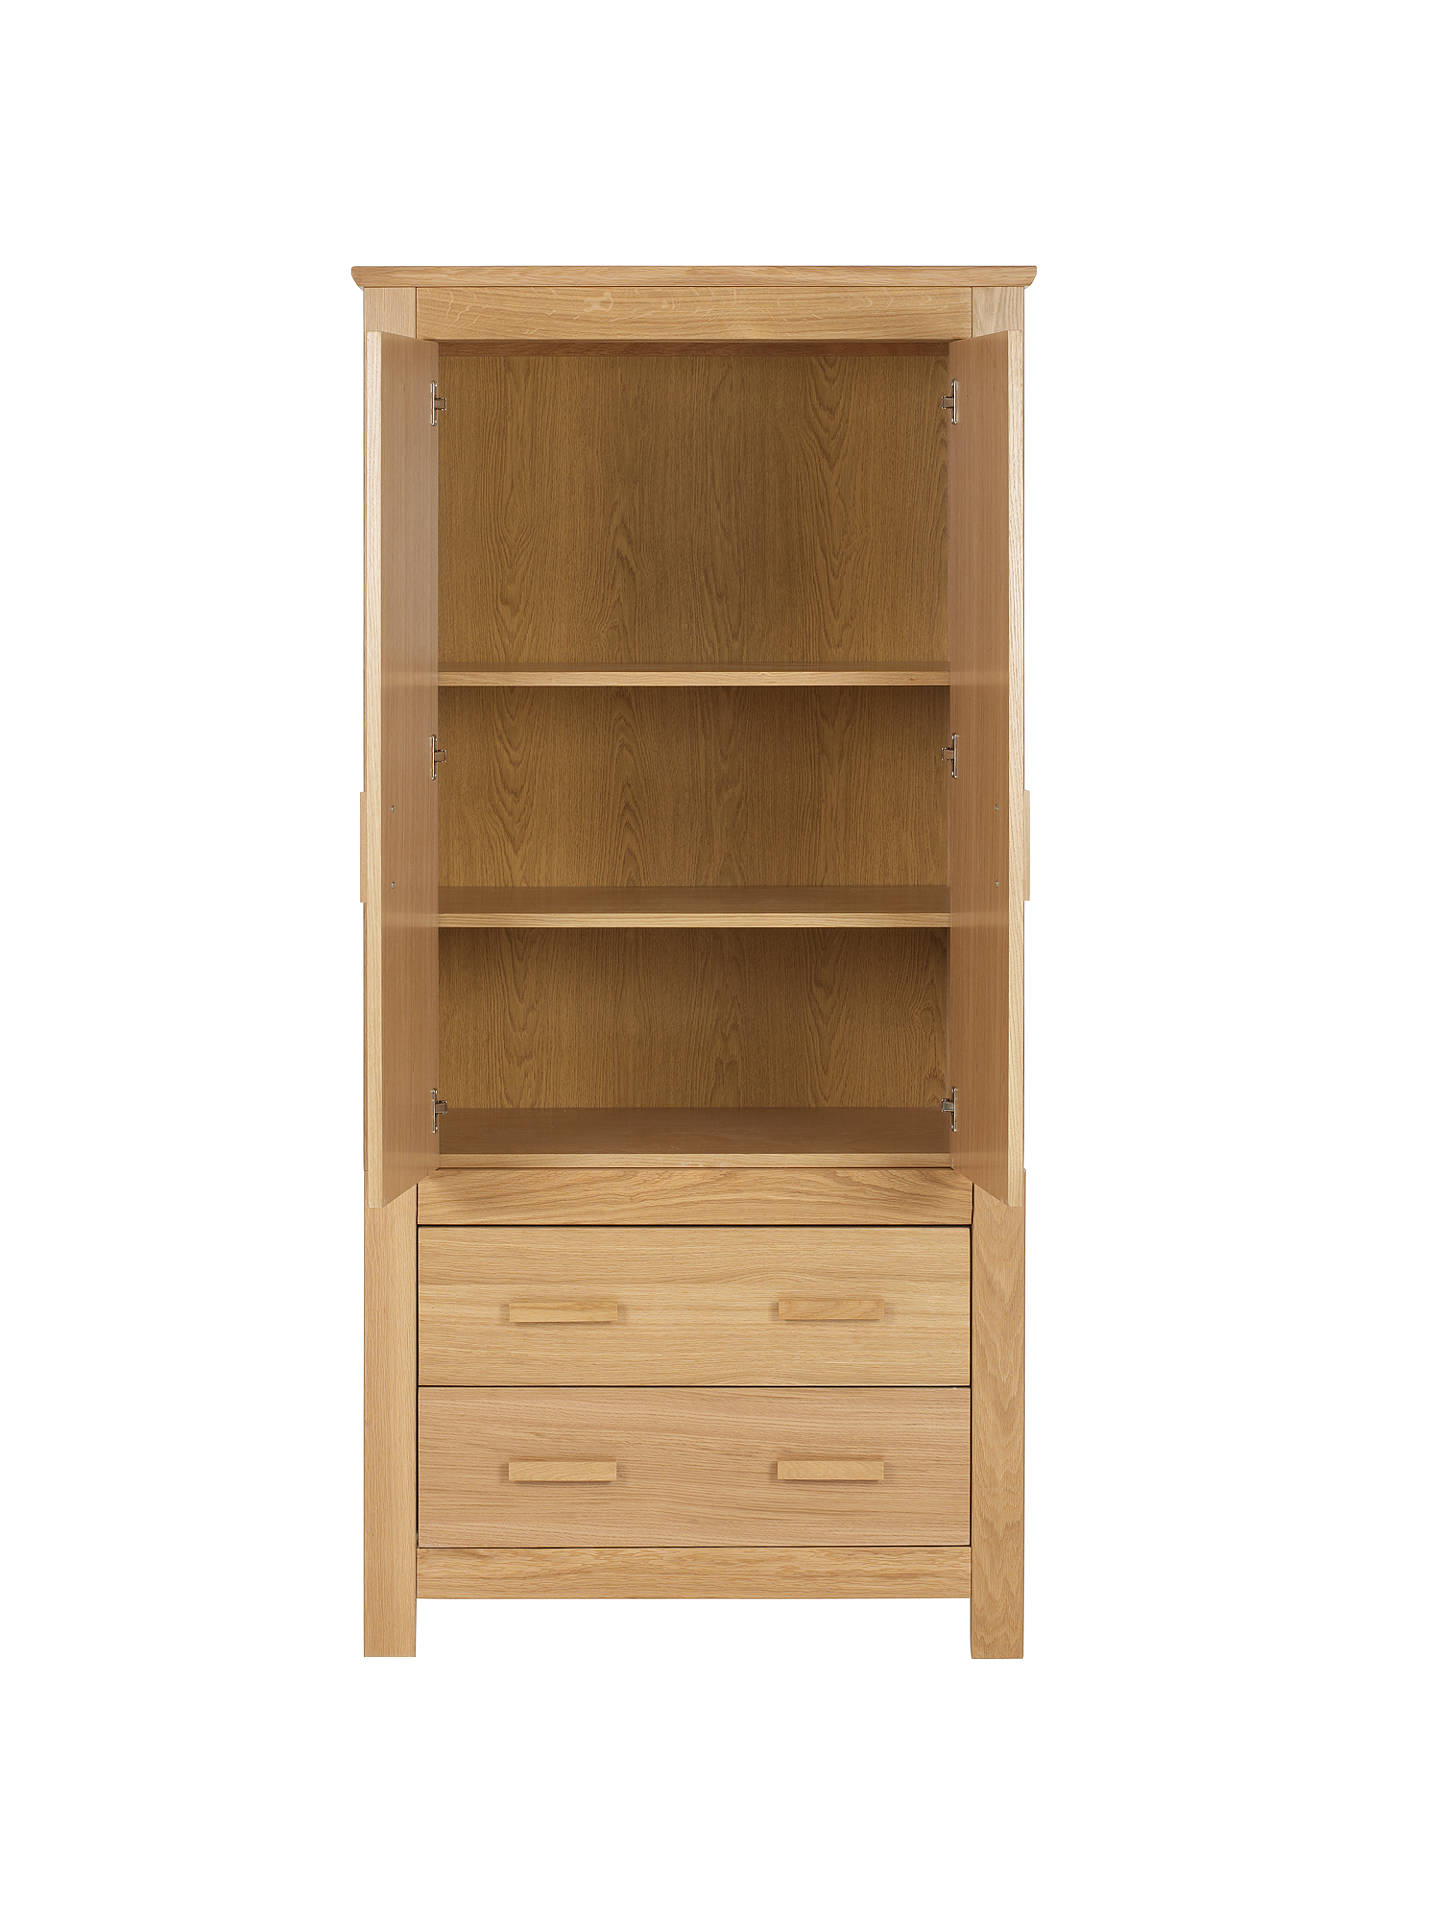 BuyJohn Lewis & Partners Lasko Wardrobe, Oak Online at johnlewis.com